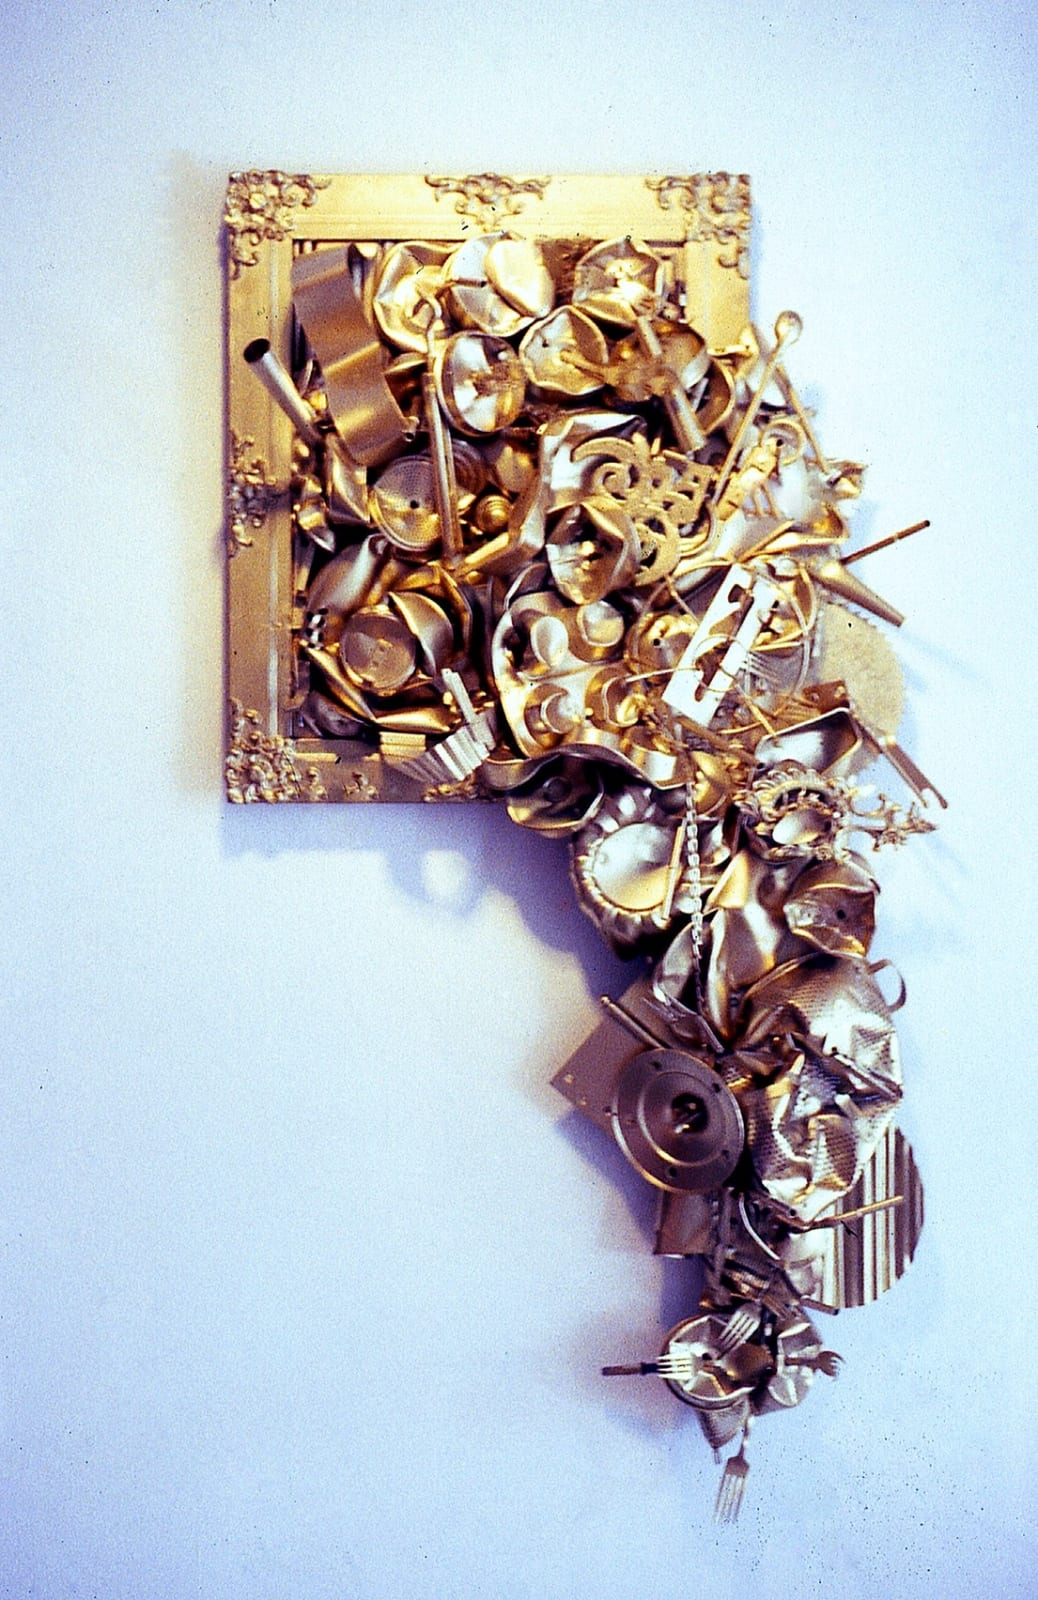 Assemblages from the Netherlands Hotel